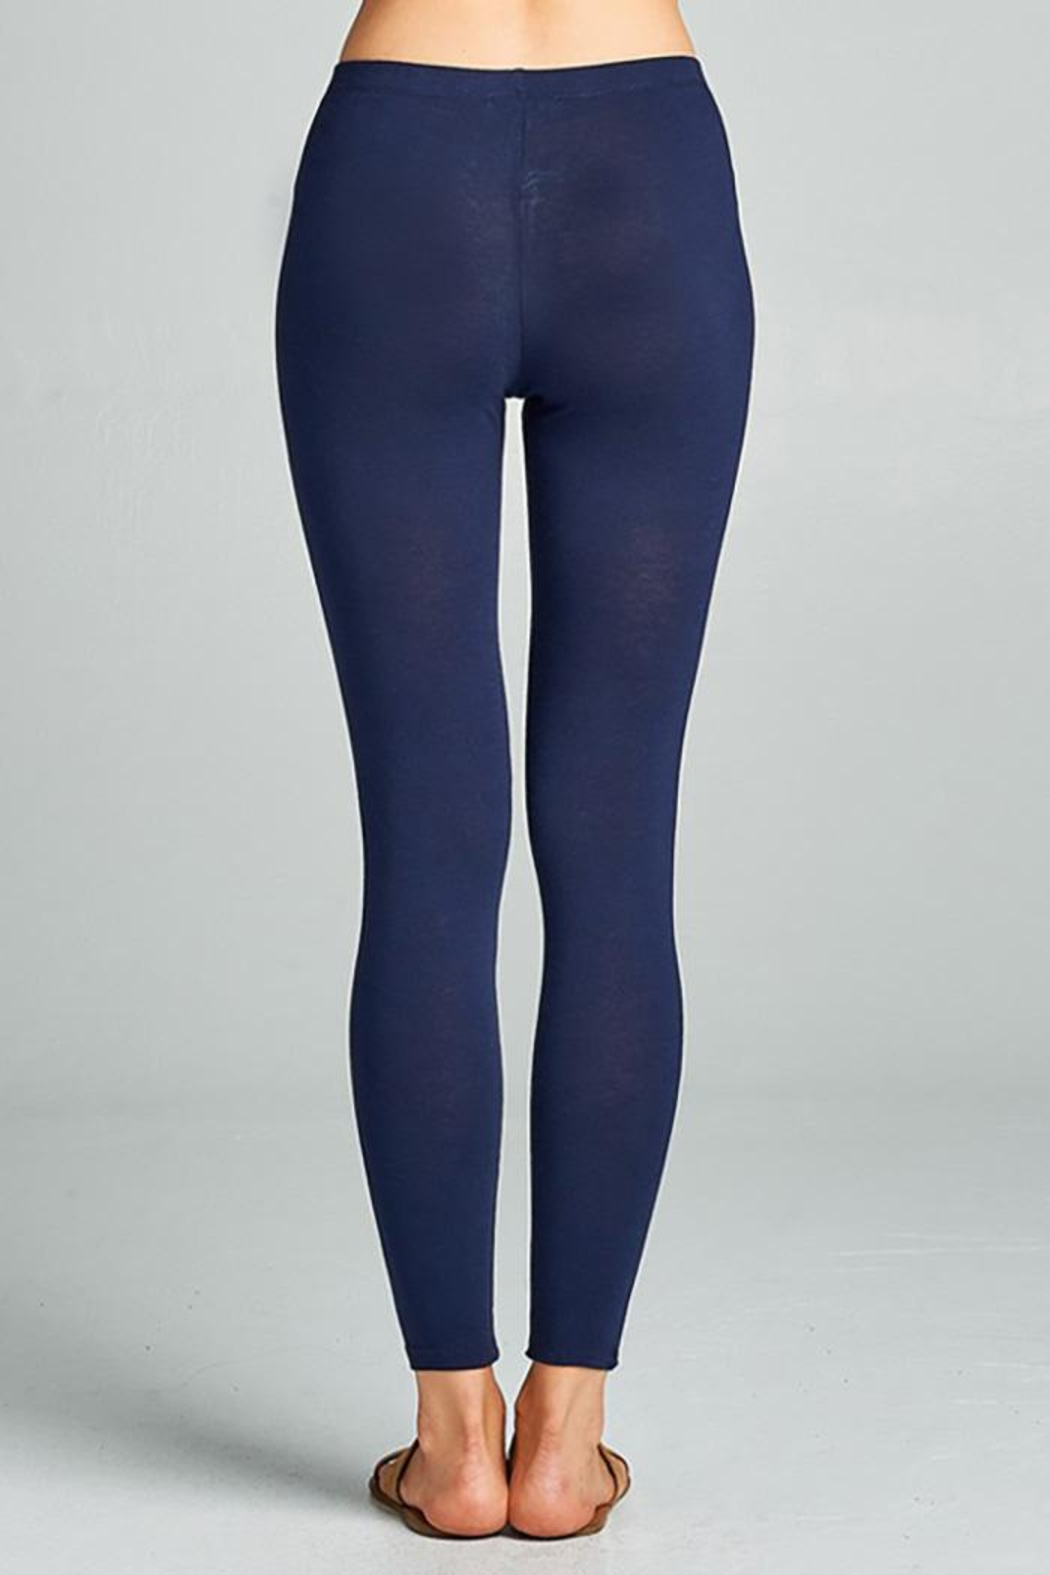 0 styleholic Cotton Jersey Leggings - Front Full Image